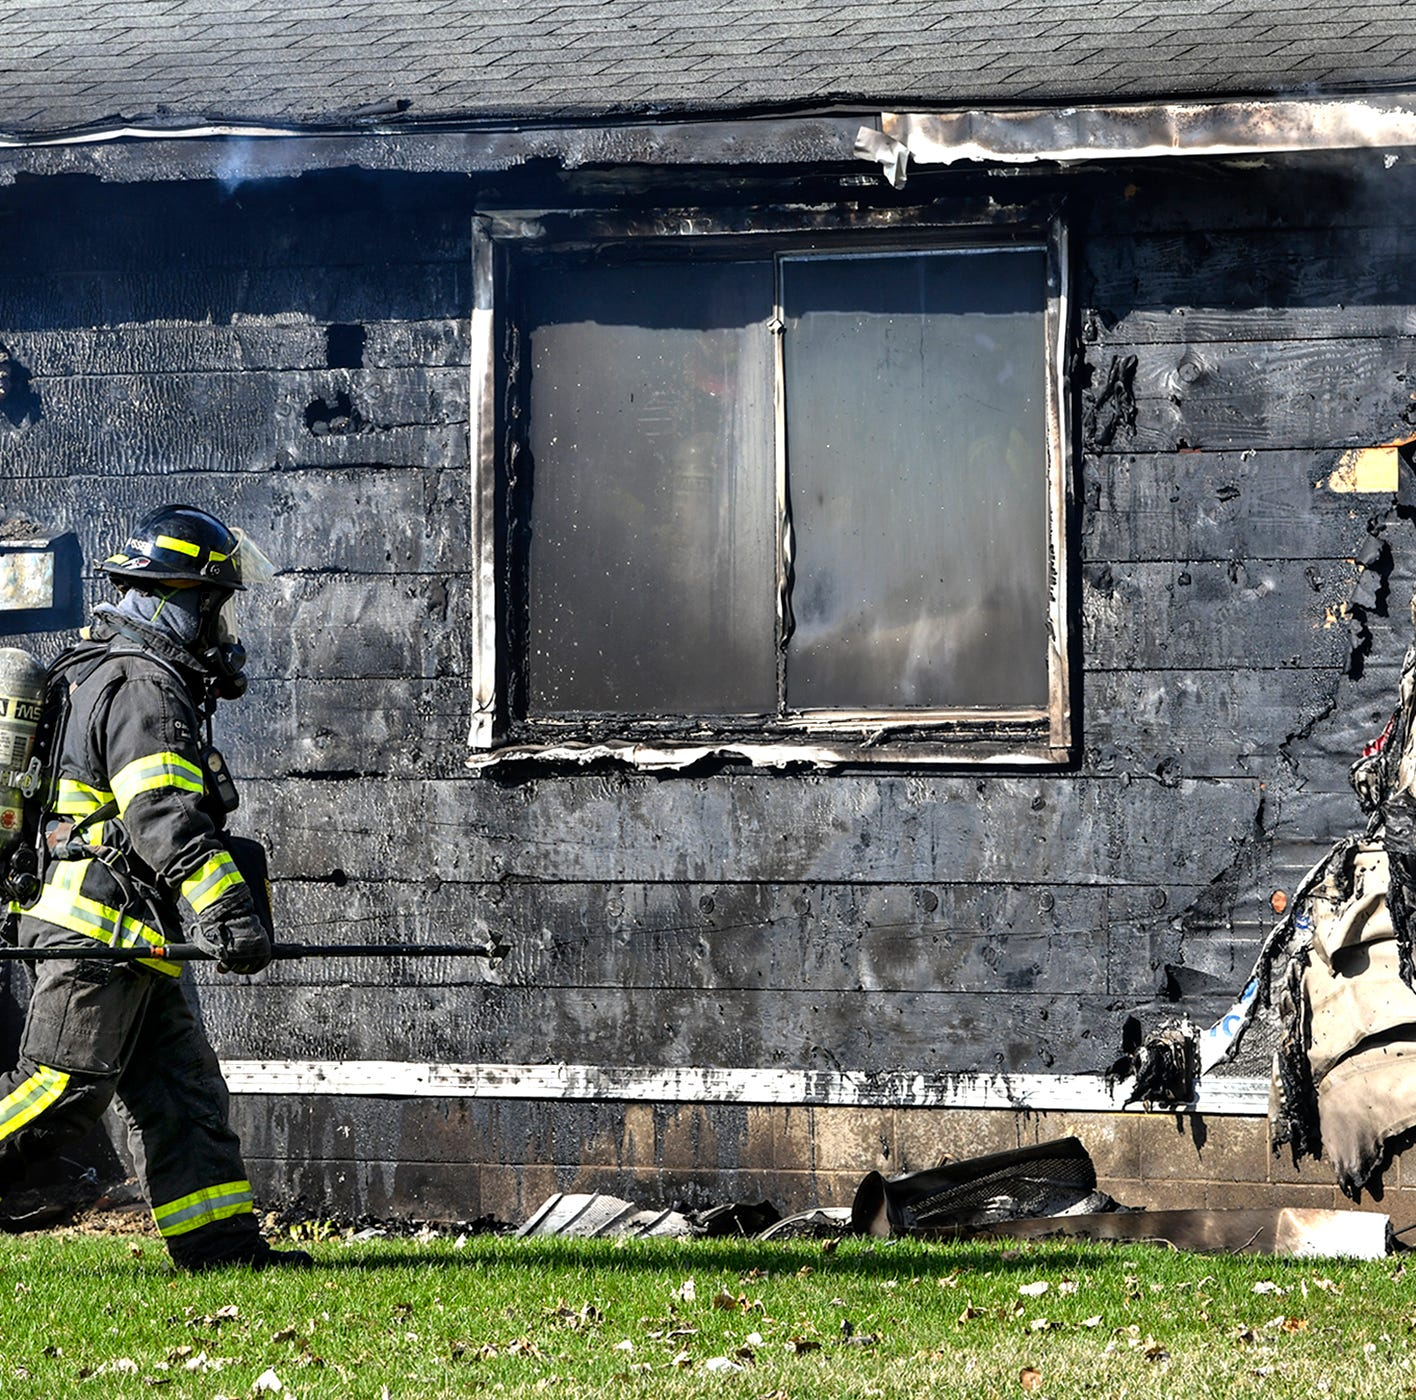 House fire causes $28,000 in damage, no injuries